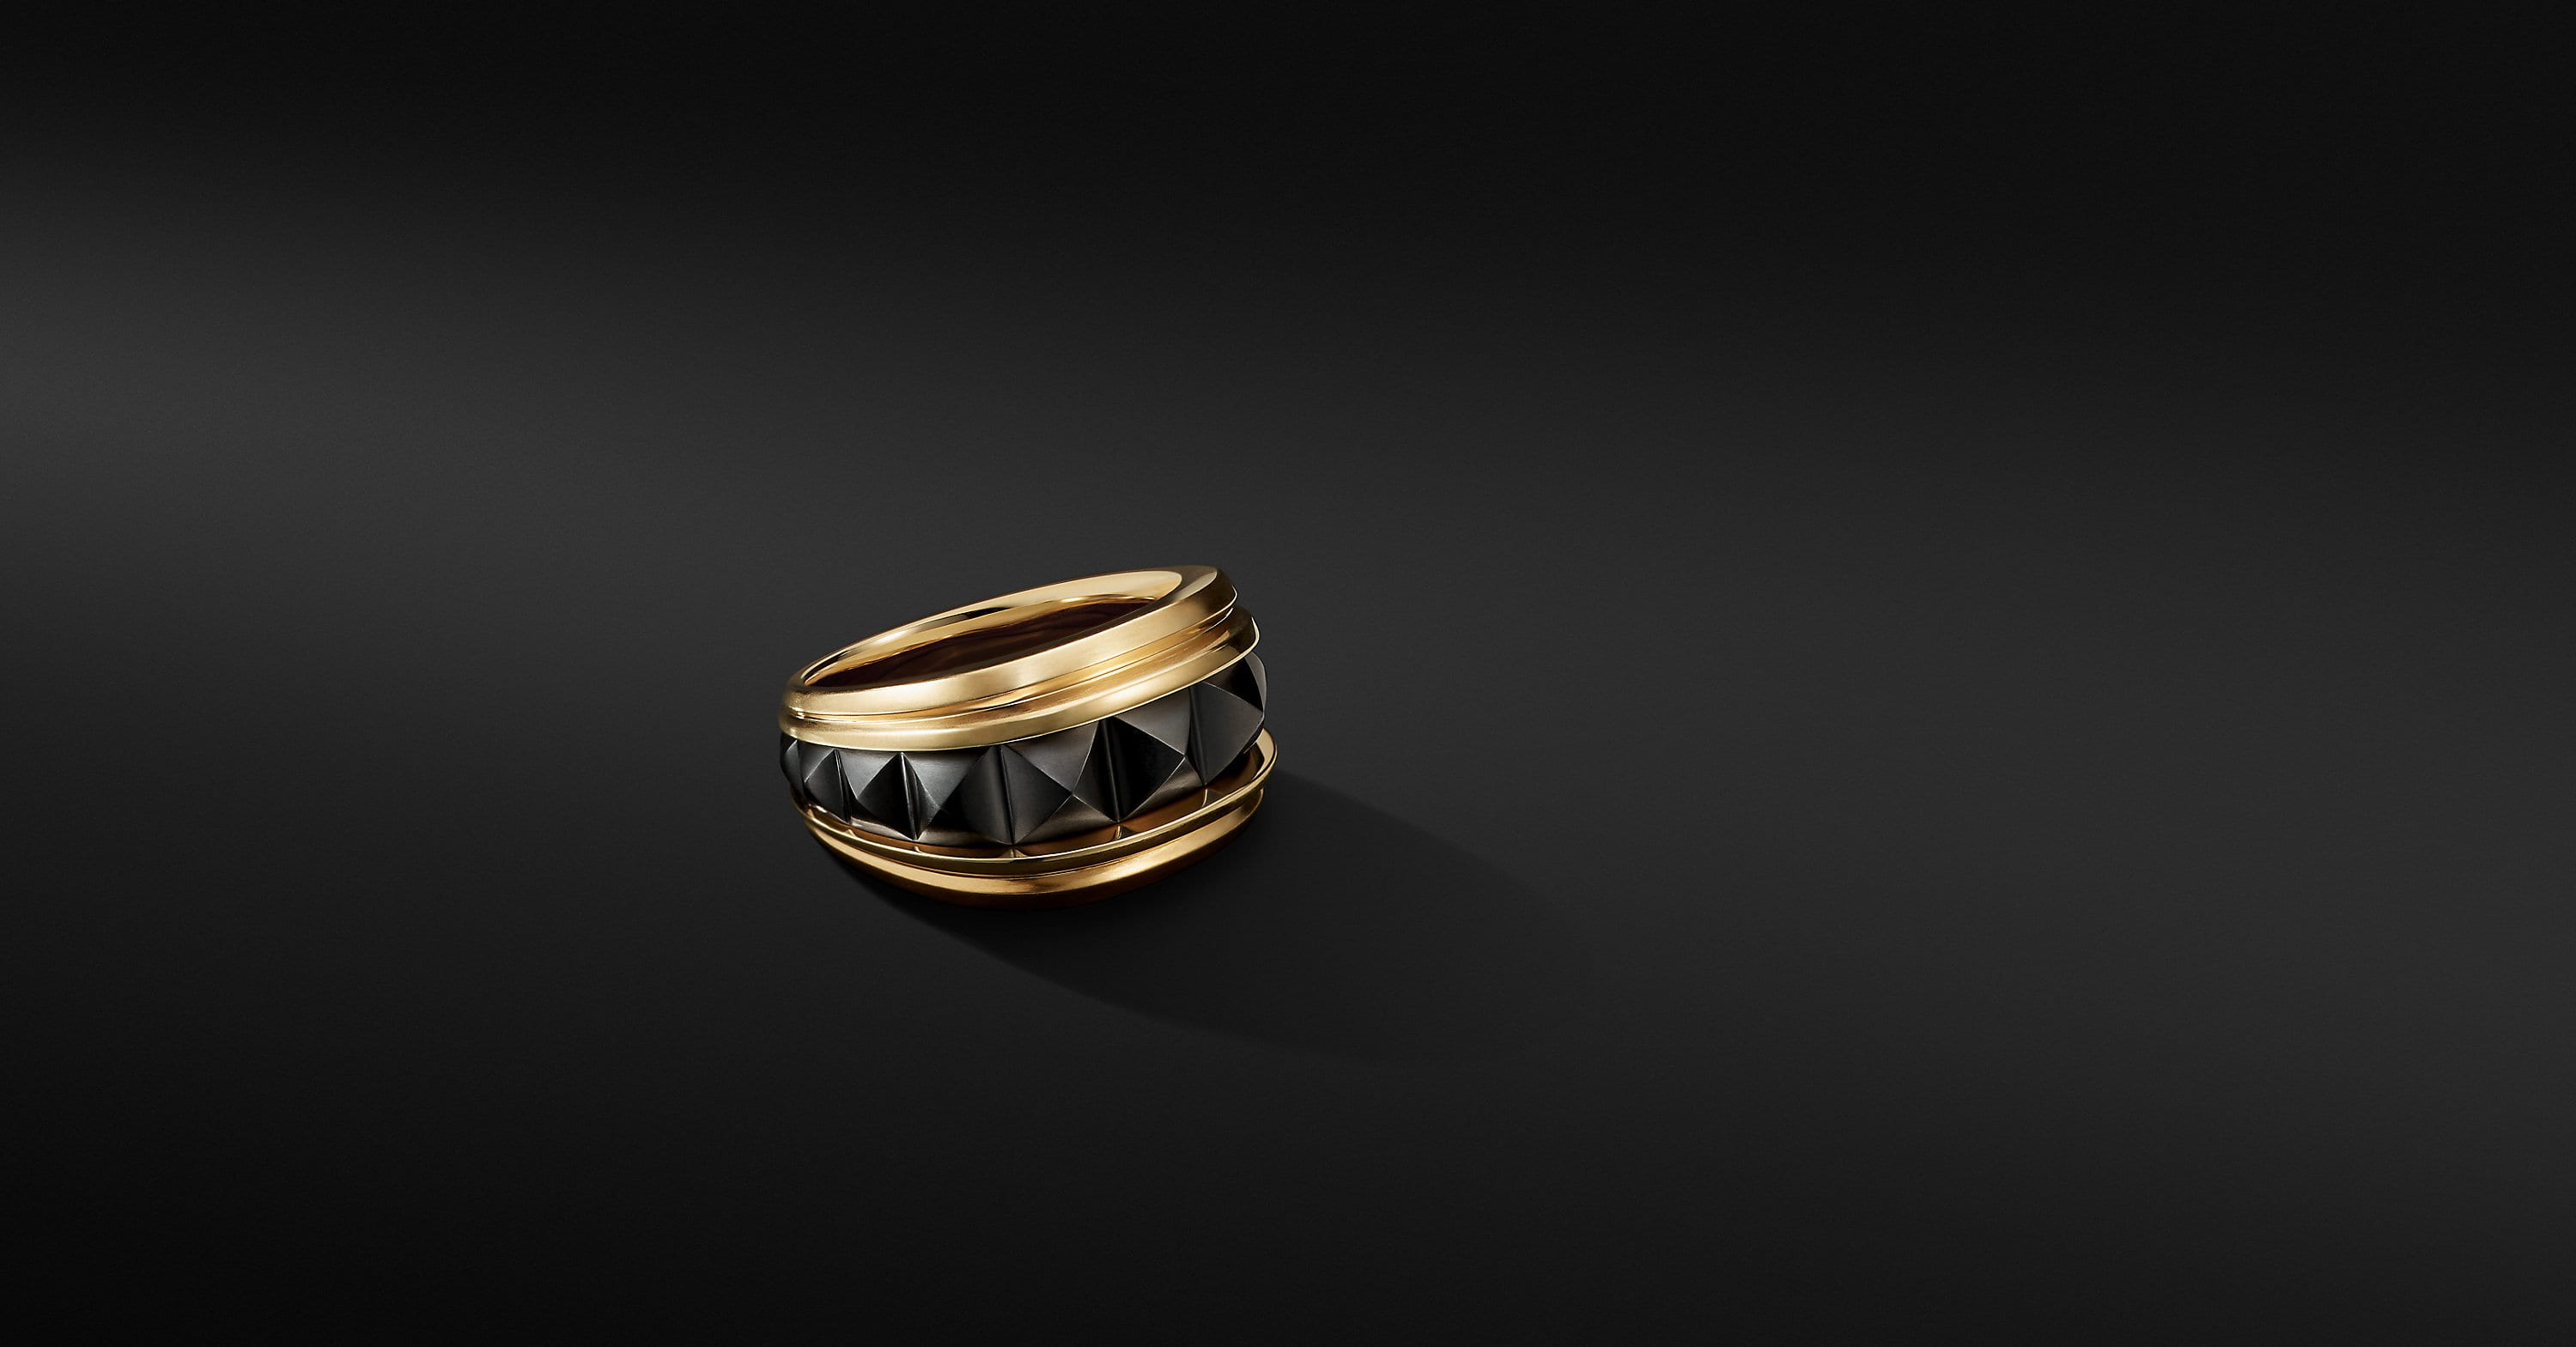 Pyramid Signet Ring in 18K Yellow Gold with Black Titanium